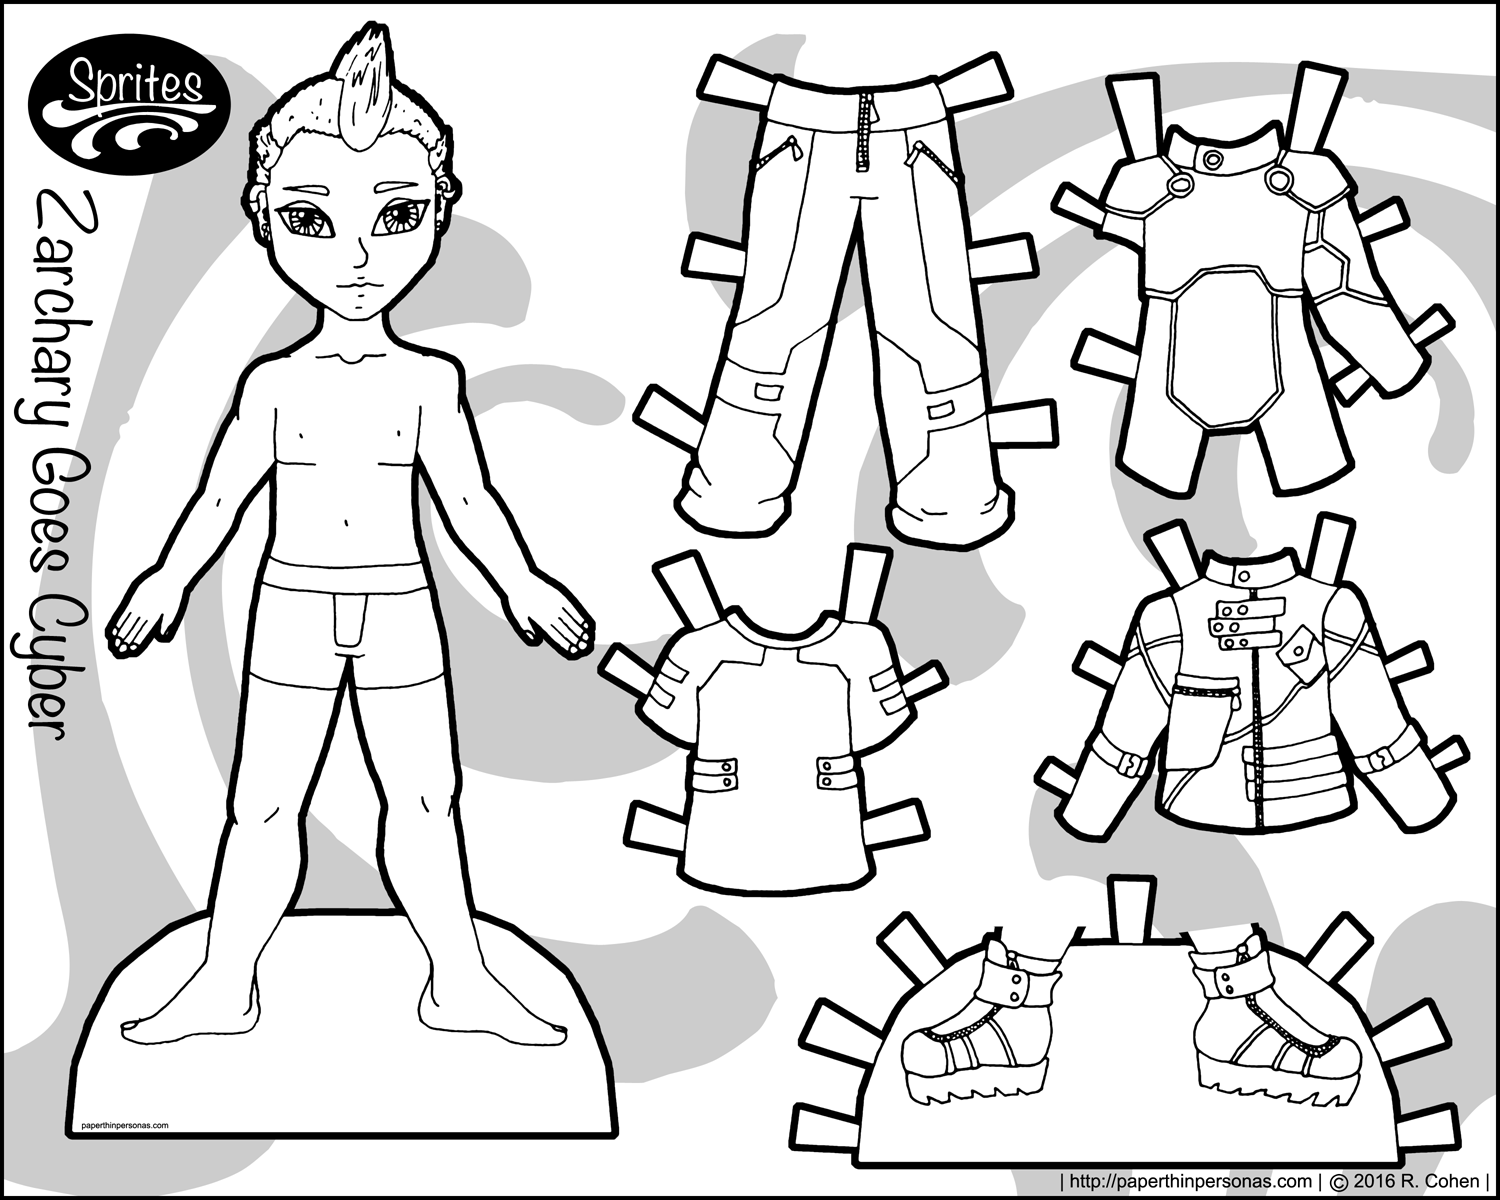 Hilaire image for paper dolls to printable